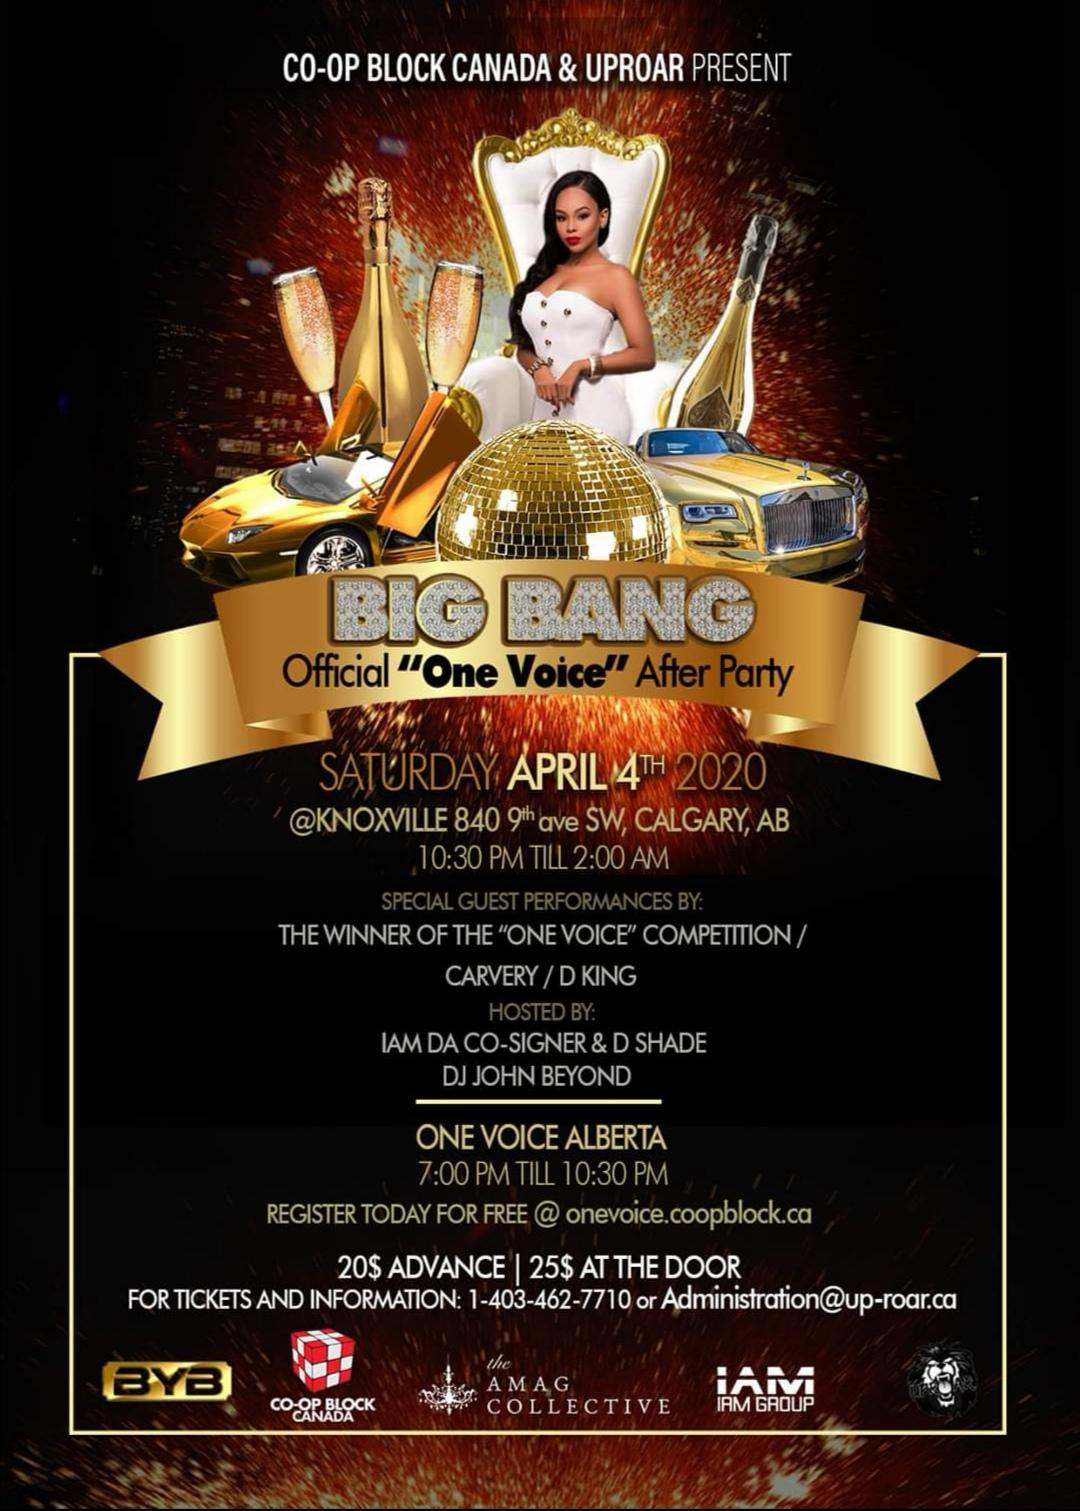 One Voice & Big Bang After Party